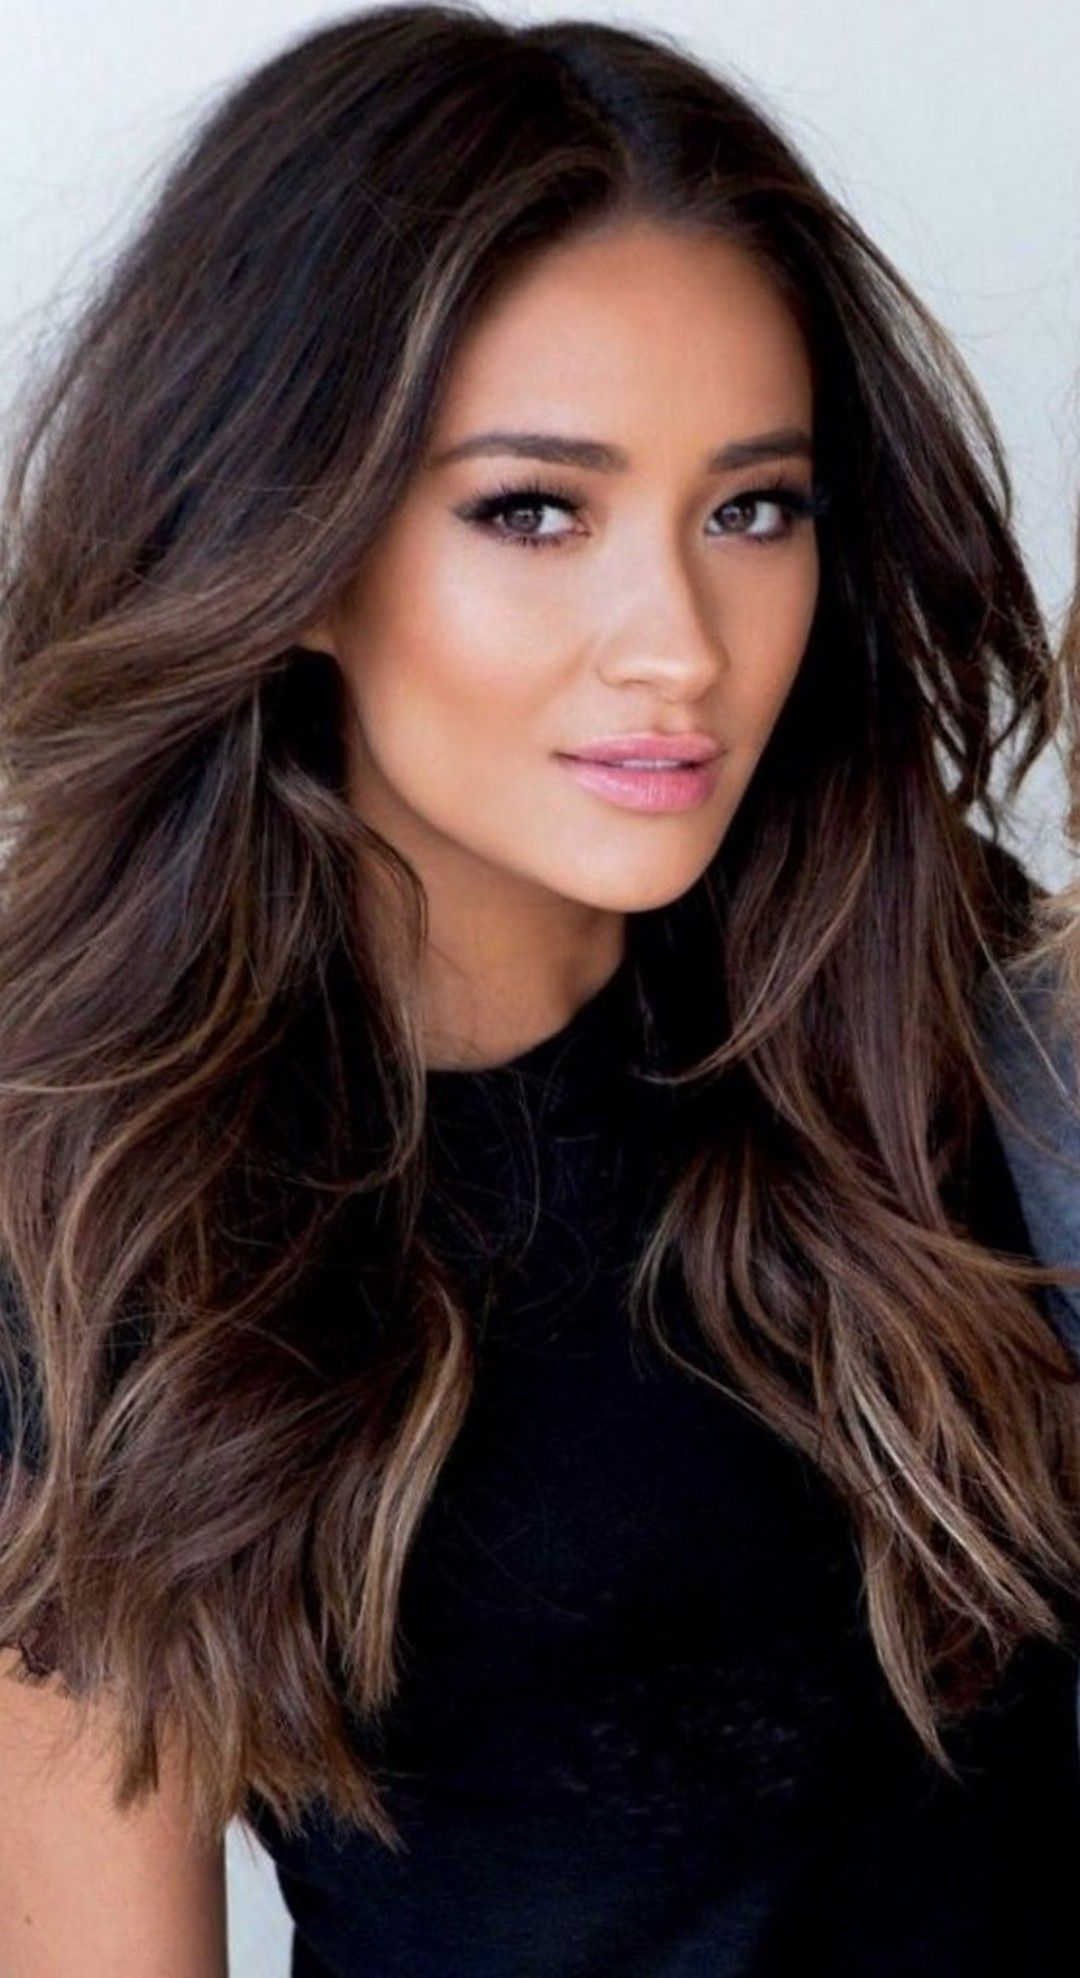 graceful Burnette Hair Color Style Trends in 2017